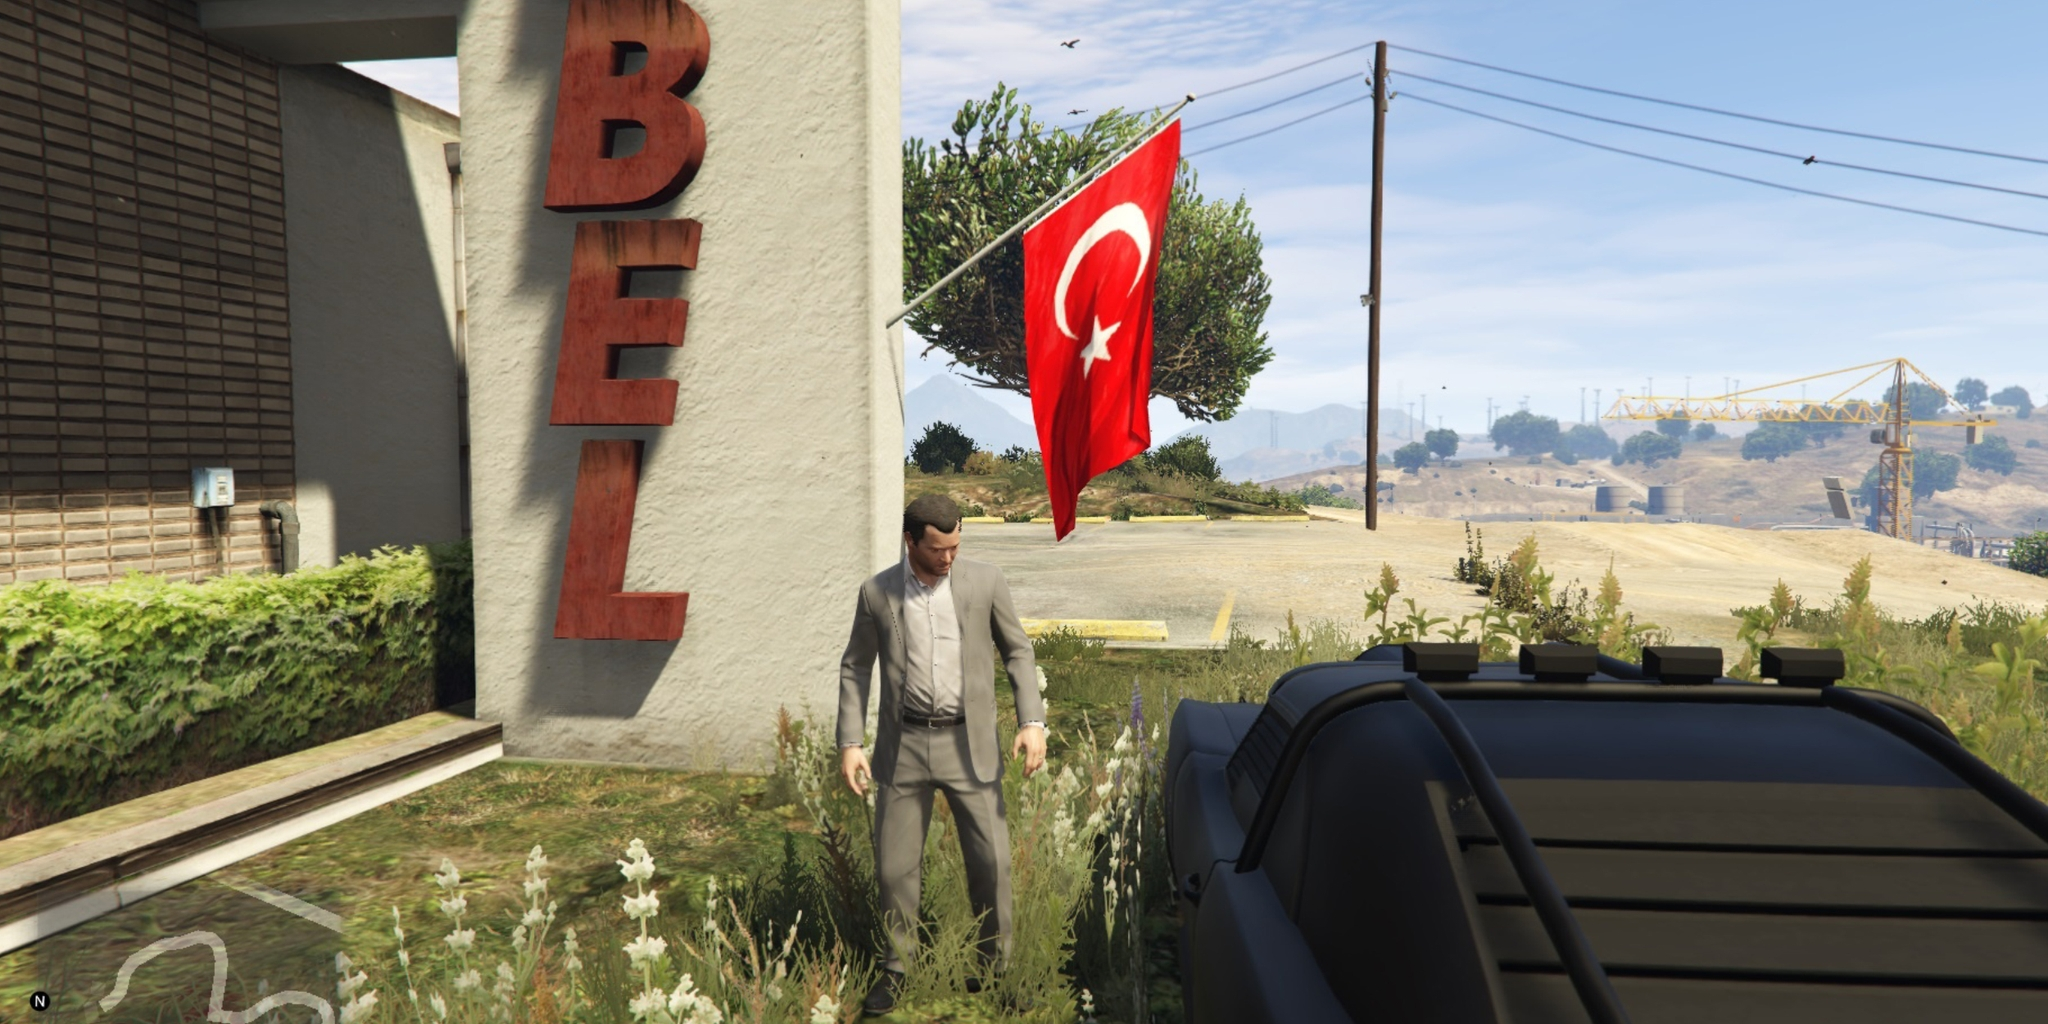 screenshot of gta5 showing a turkish flag